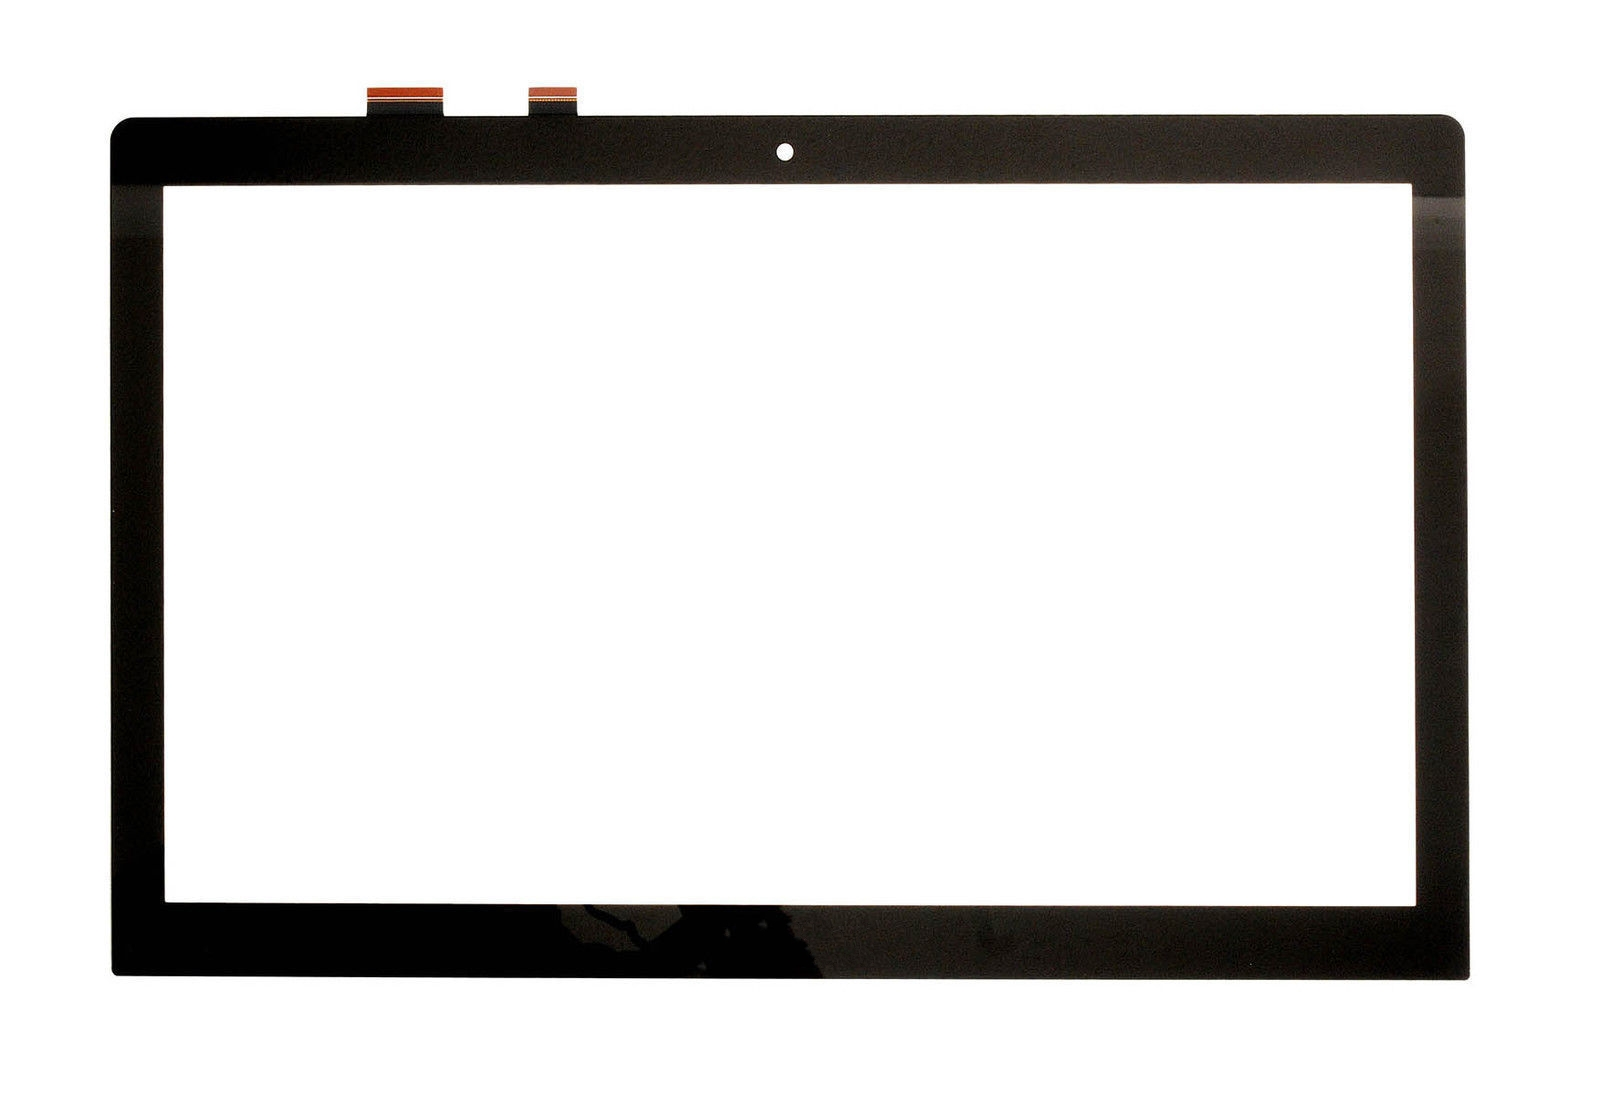 For Asus VivoBook S550 S550C S550CA S550CB S550CM Touch Screen Touch Panel Digitizer Glass Lens Repair Parts Replacement touch screen digitizer glass for asus vivobook v550 v550c v550ca tcp15f81 v0 4